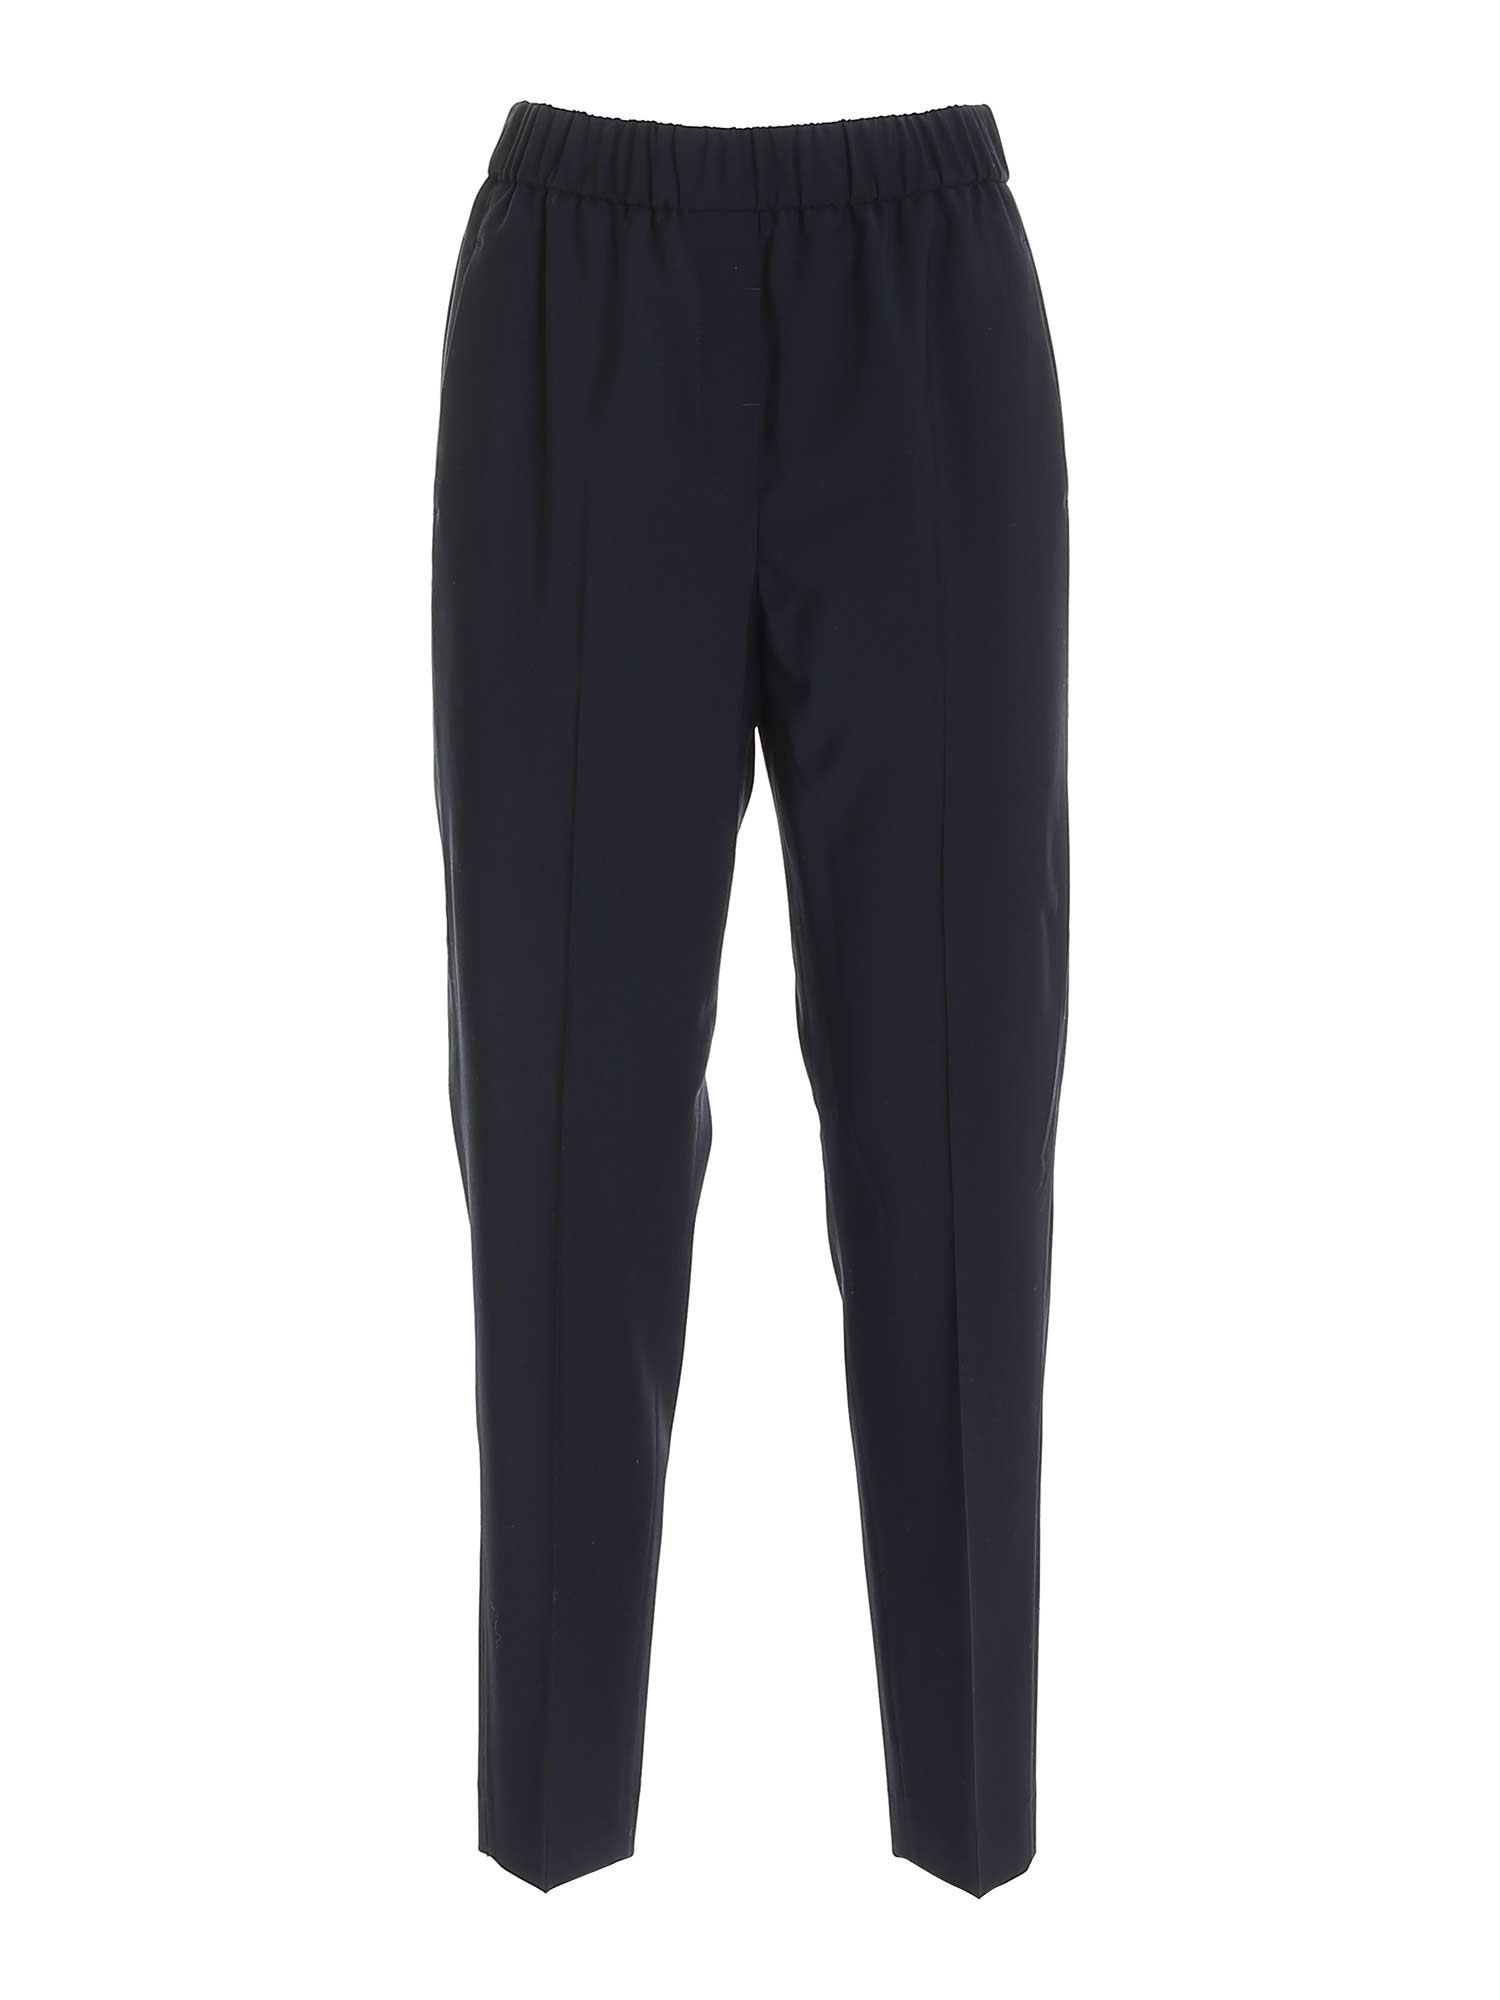 Peserico Track pants HIGH WAISTED PANTS IN DARK BLUE